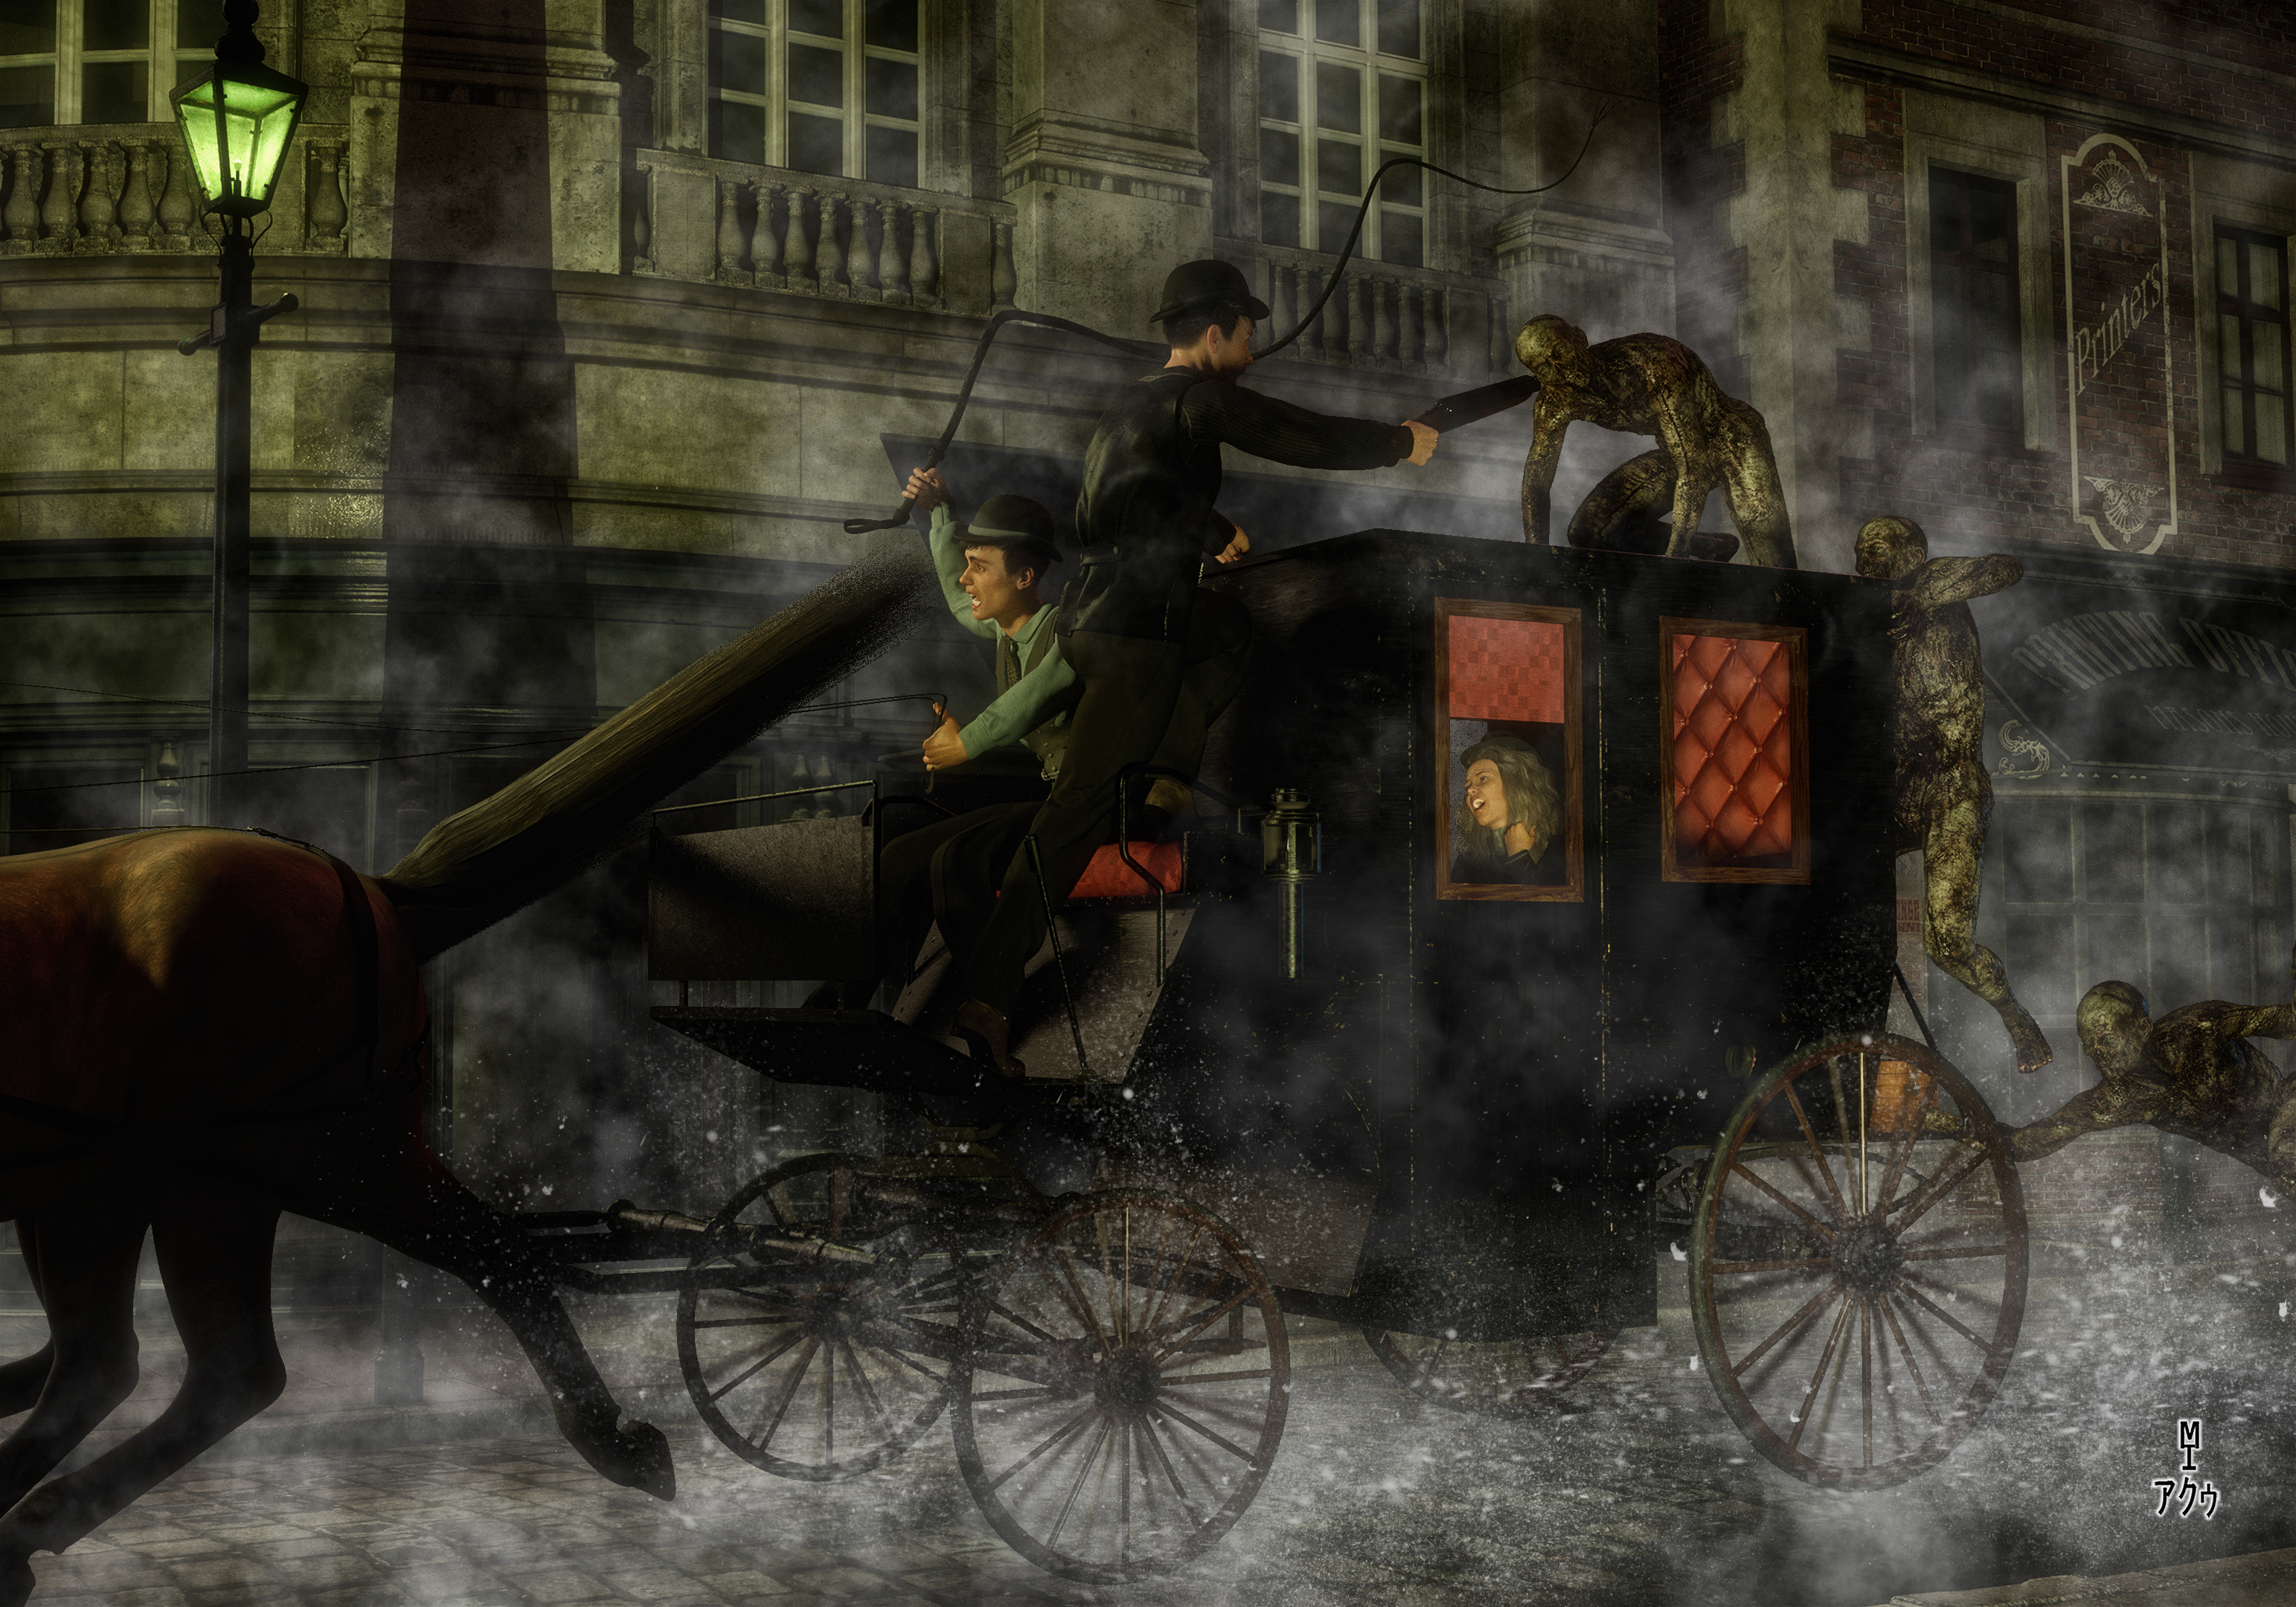 The Zombies of Old London